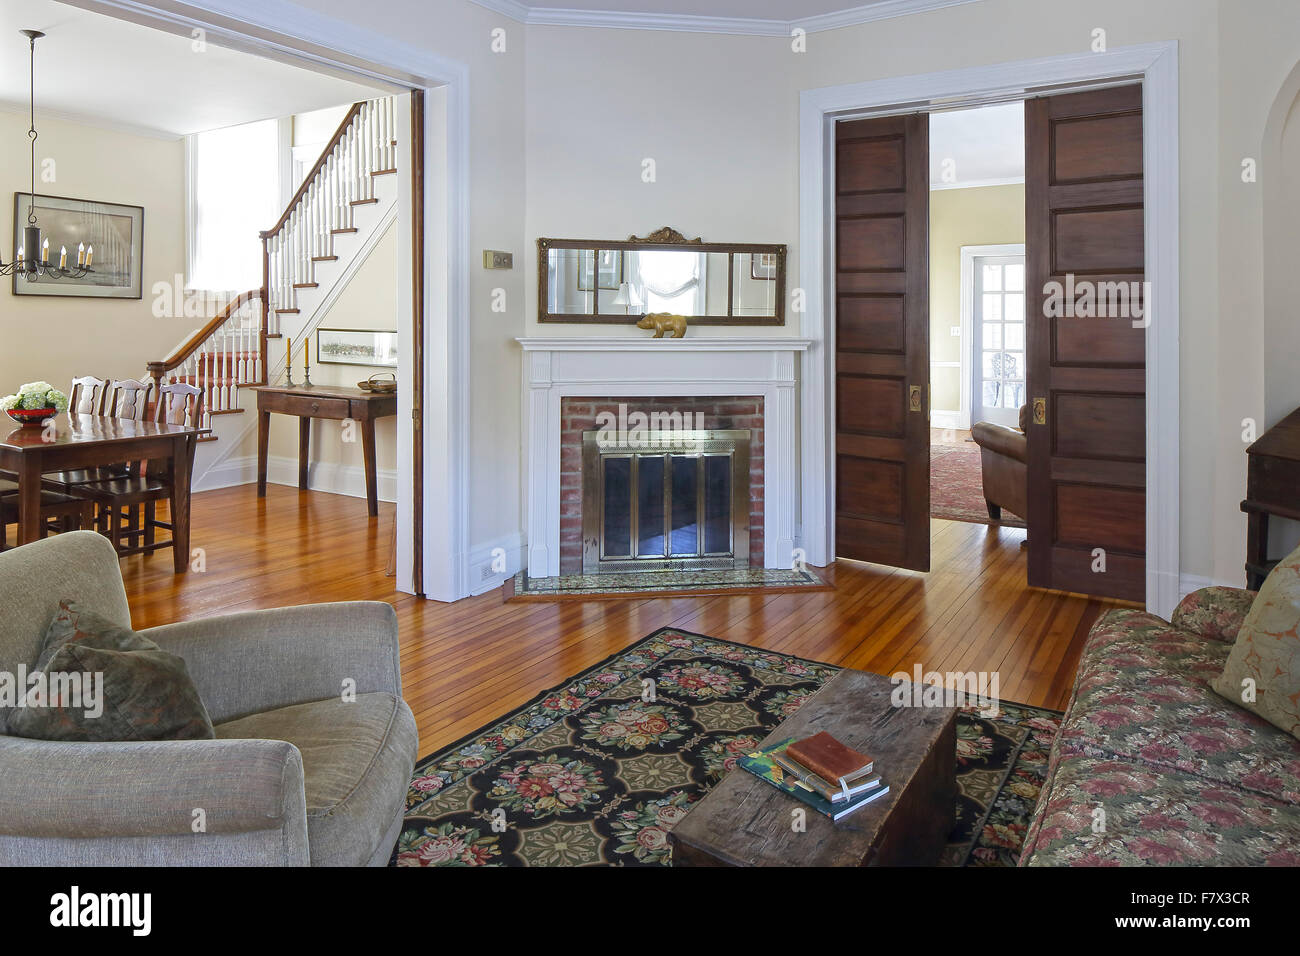 Main Reception Room Living Parlor At Entrance With View Through To Dining And TV Queen Anne Victorian House